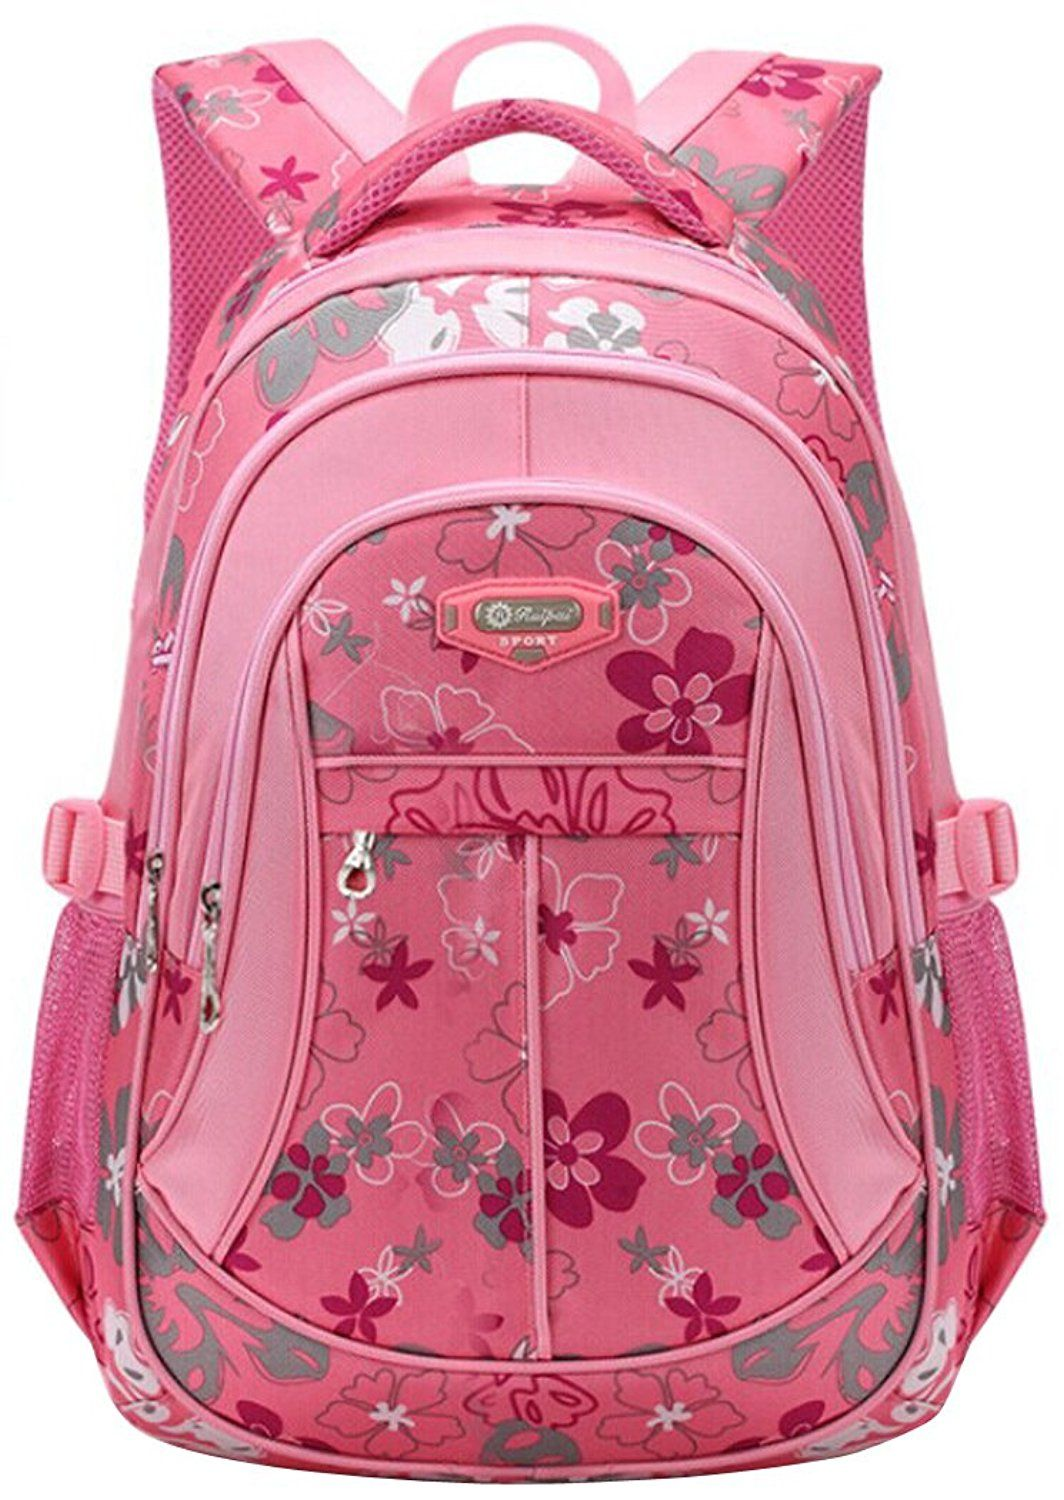 Coofit School Backpack for Girls Flowers Pattern Backpacks for Middle School  Cute Bookbag for School     Visit the image link more details. 2d6b67f2c7bf0